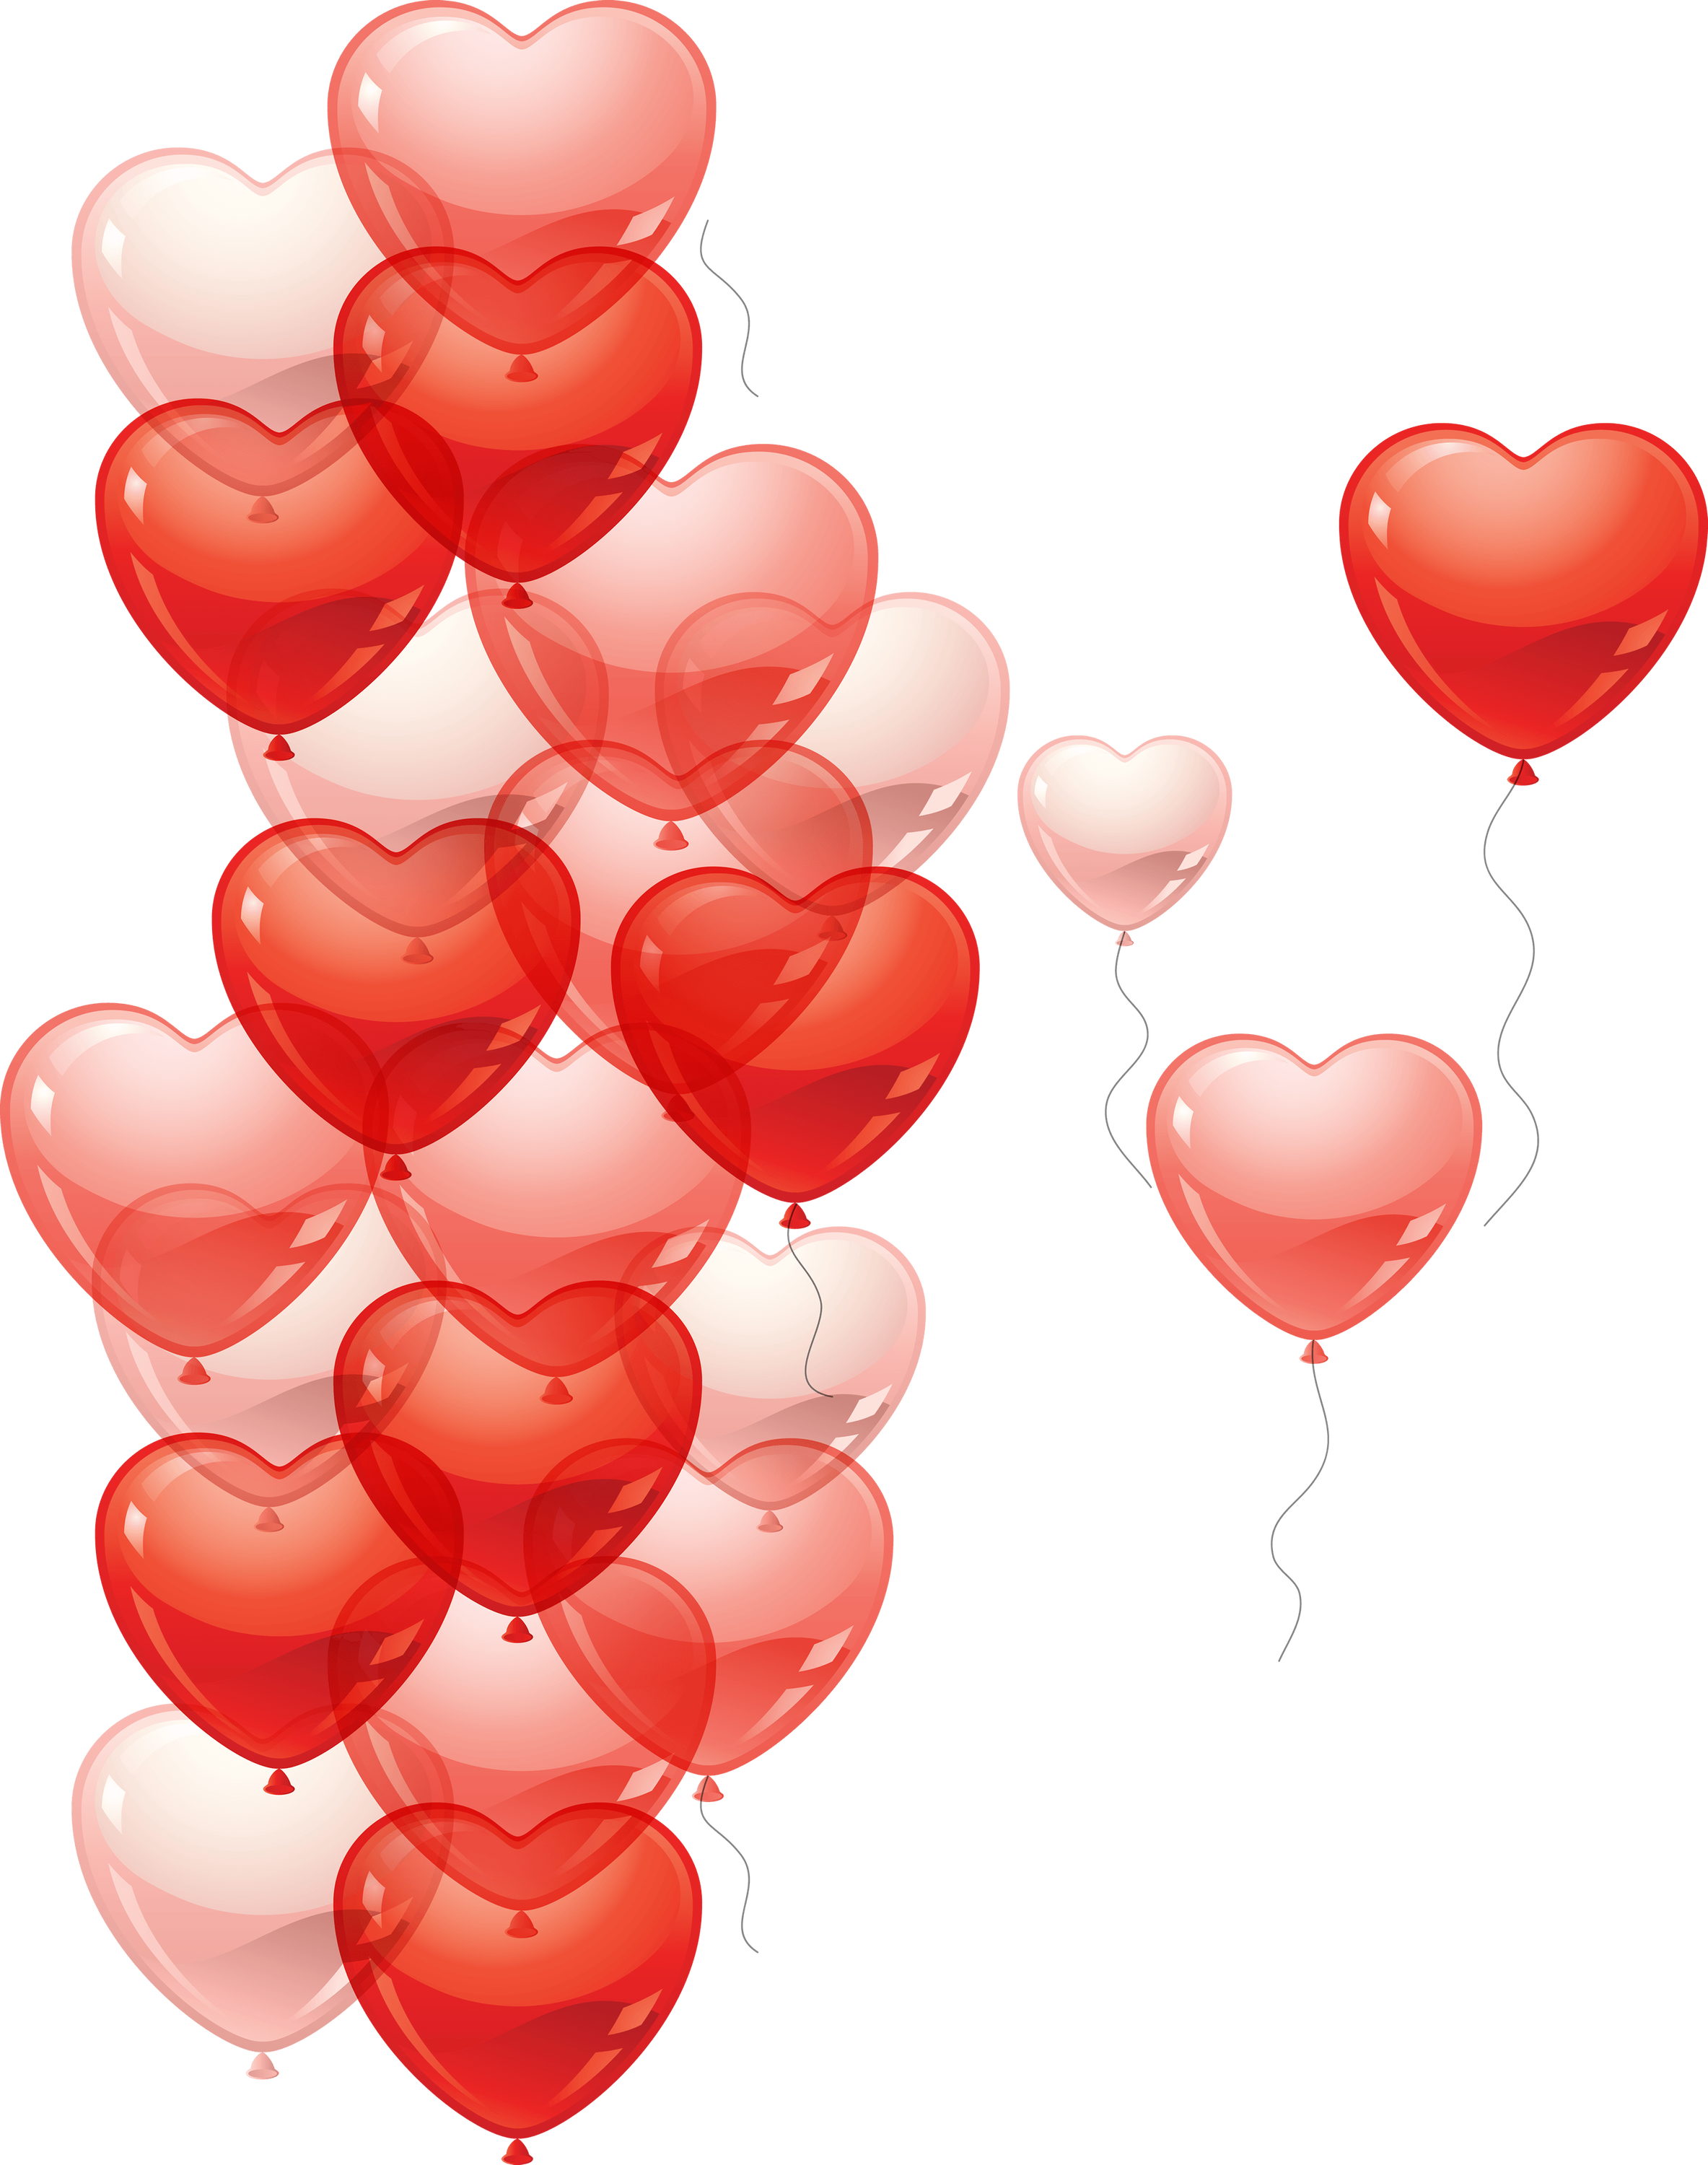 Heart balloons clipart image library library Heart Balloon transparent PNG - StickPNG image library library